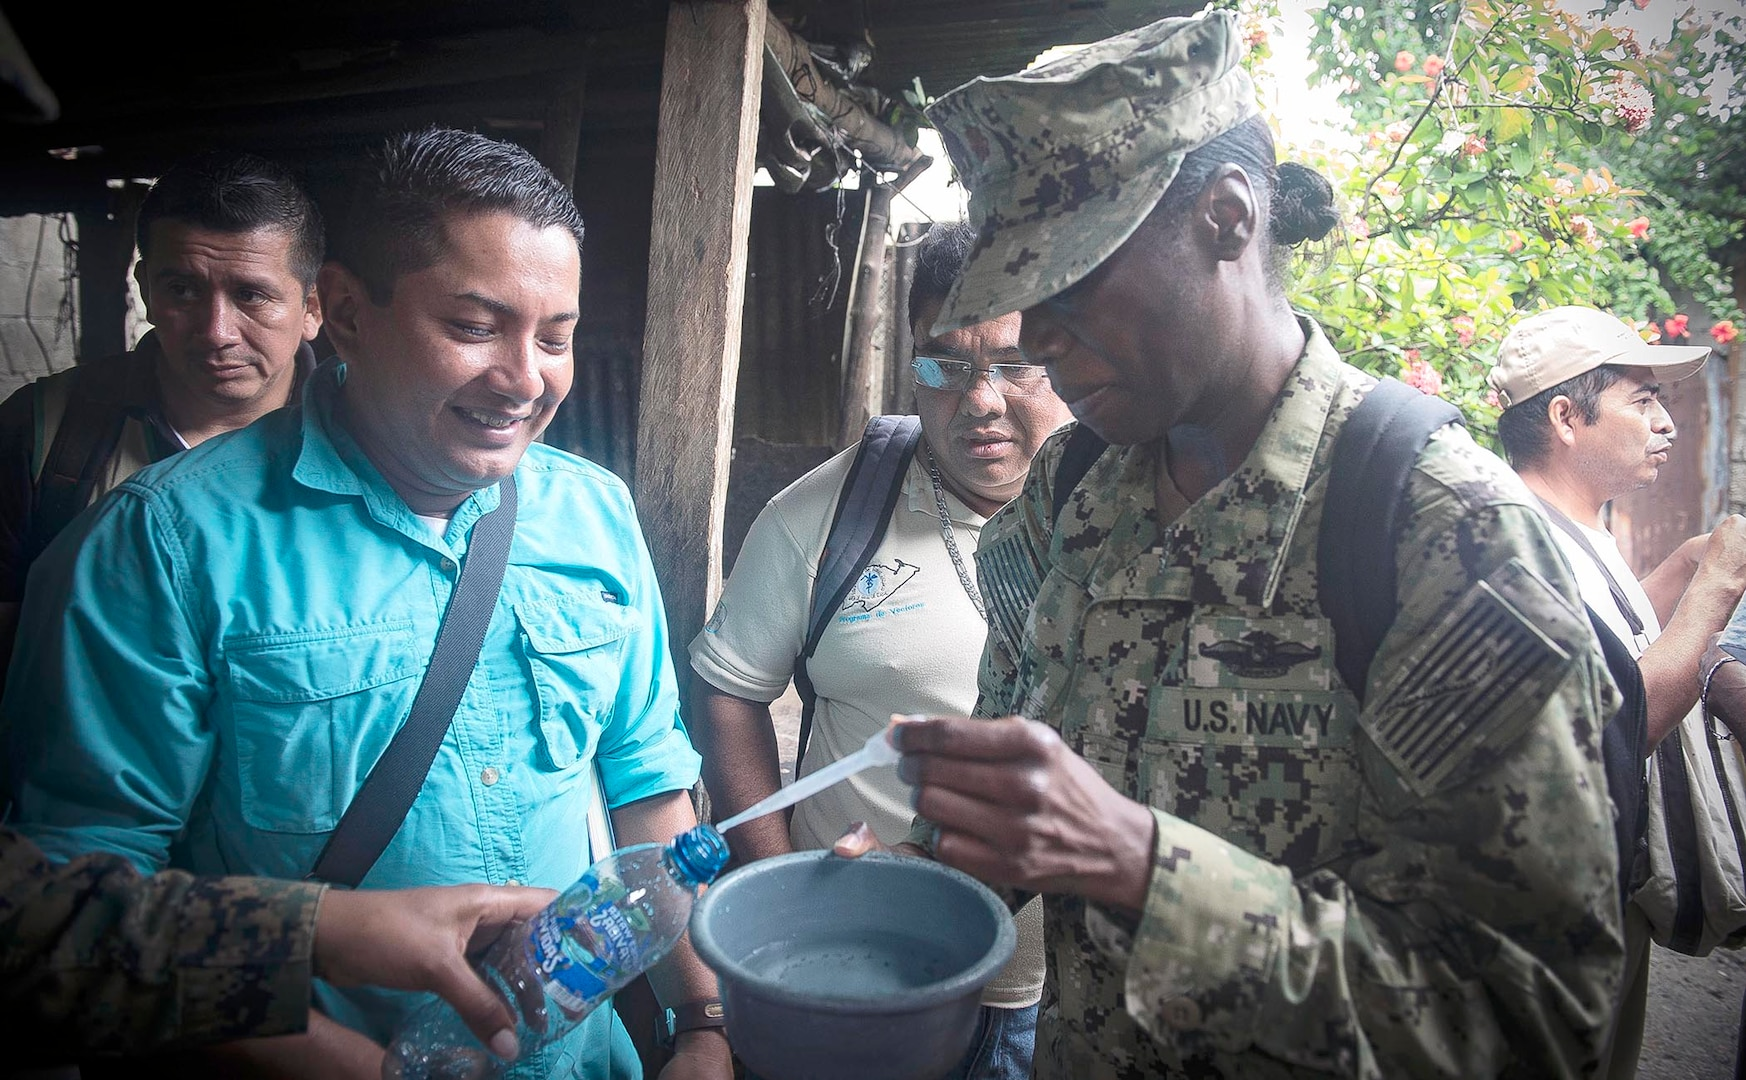 Lt. Cmdr. Jinaki Gourdine (right), assigned to Navy Environmental and Preventive Medicine Unit, or NEPMU, 2, from Norfolk, Va., takes a sample of mosquito-larva contaminated rainwater in the Barrios El Rastro neighborhood of Puerto Barrios, Guatemala, during Continuing Promise 2017, or CP-17, Feb. 10. CP-17 is a U.S. Southern Command-sponsored and U.S. Naval Forces Southern Command/U.S. 4th Fleet-conducted deployment to conduct civil-military operations including humanitarian assistance, training engagements, medical, dental, and veterinary support in an effort to show U.S. support and commitment to Central and South America.